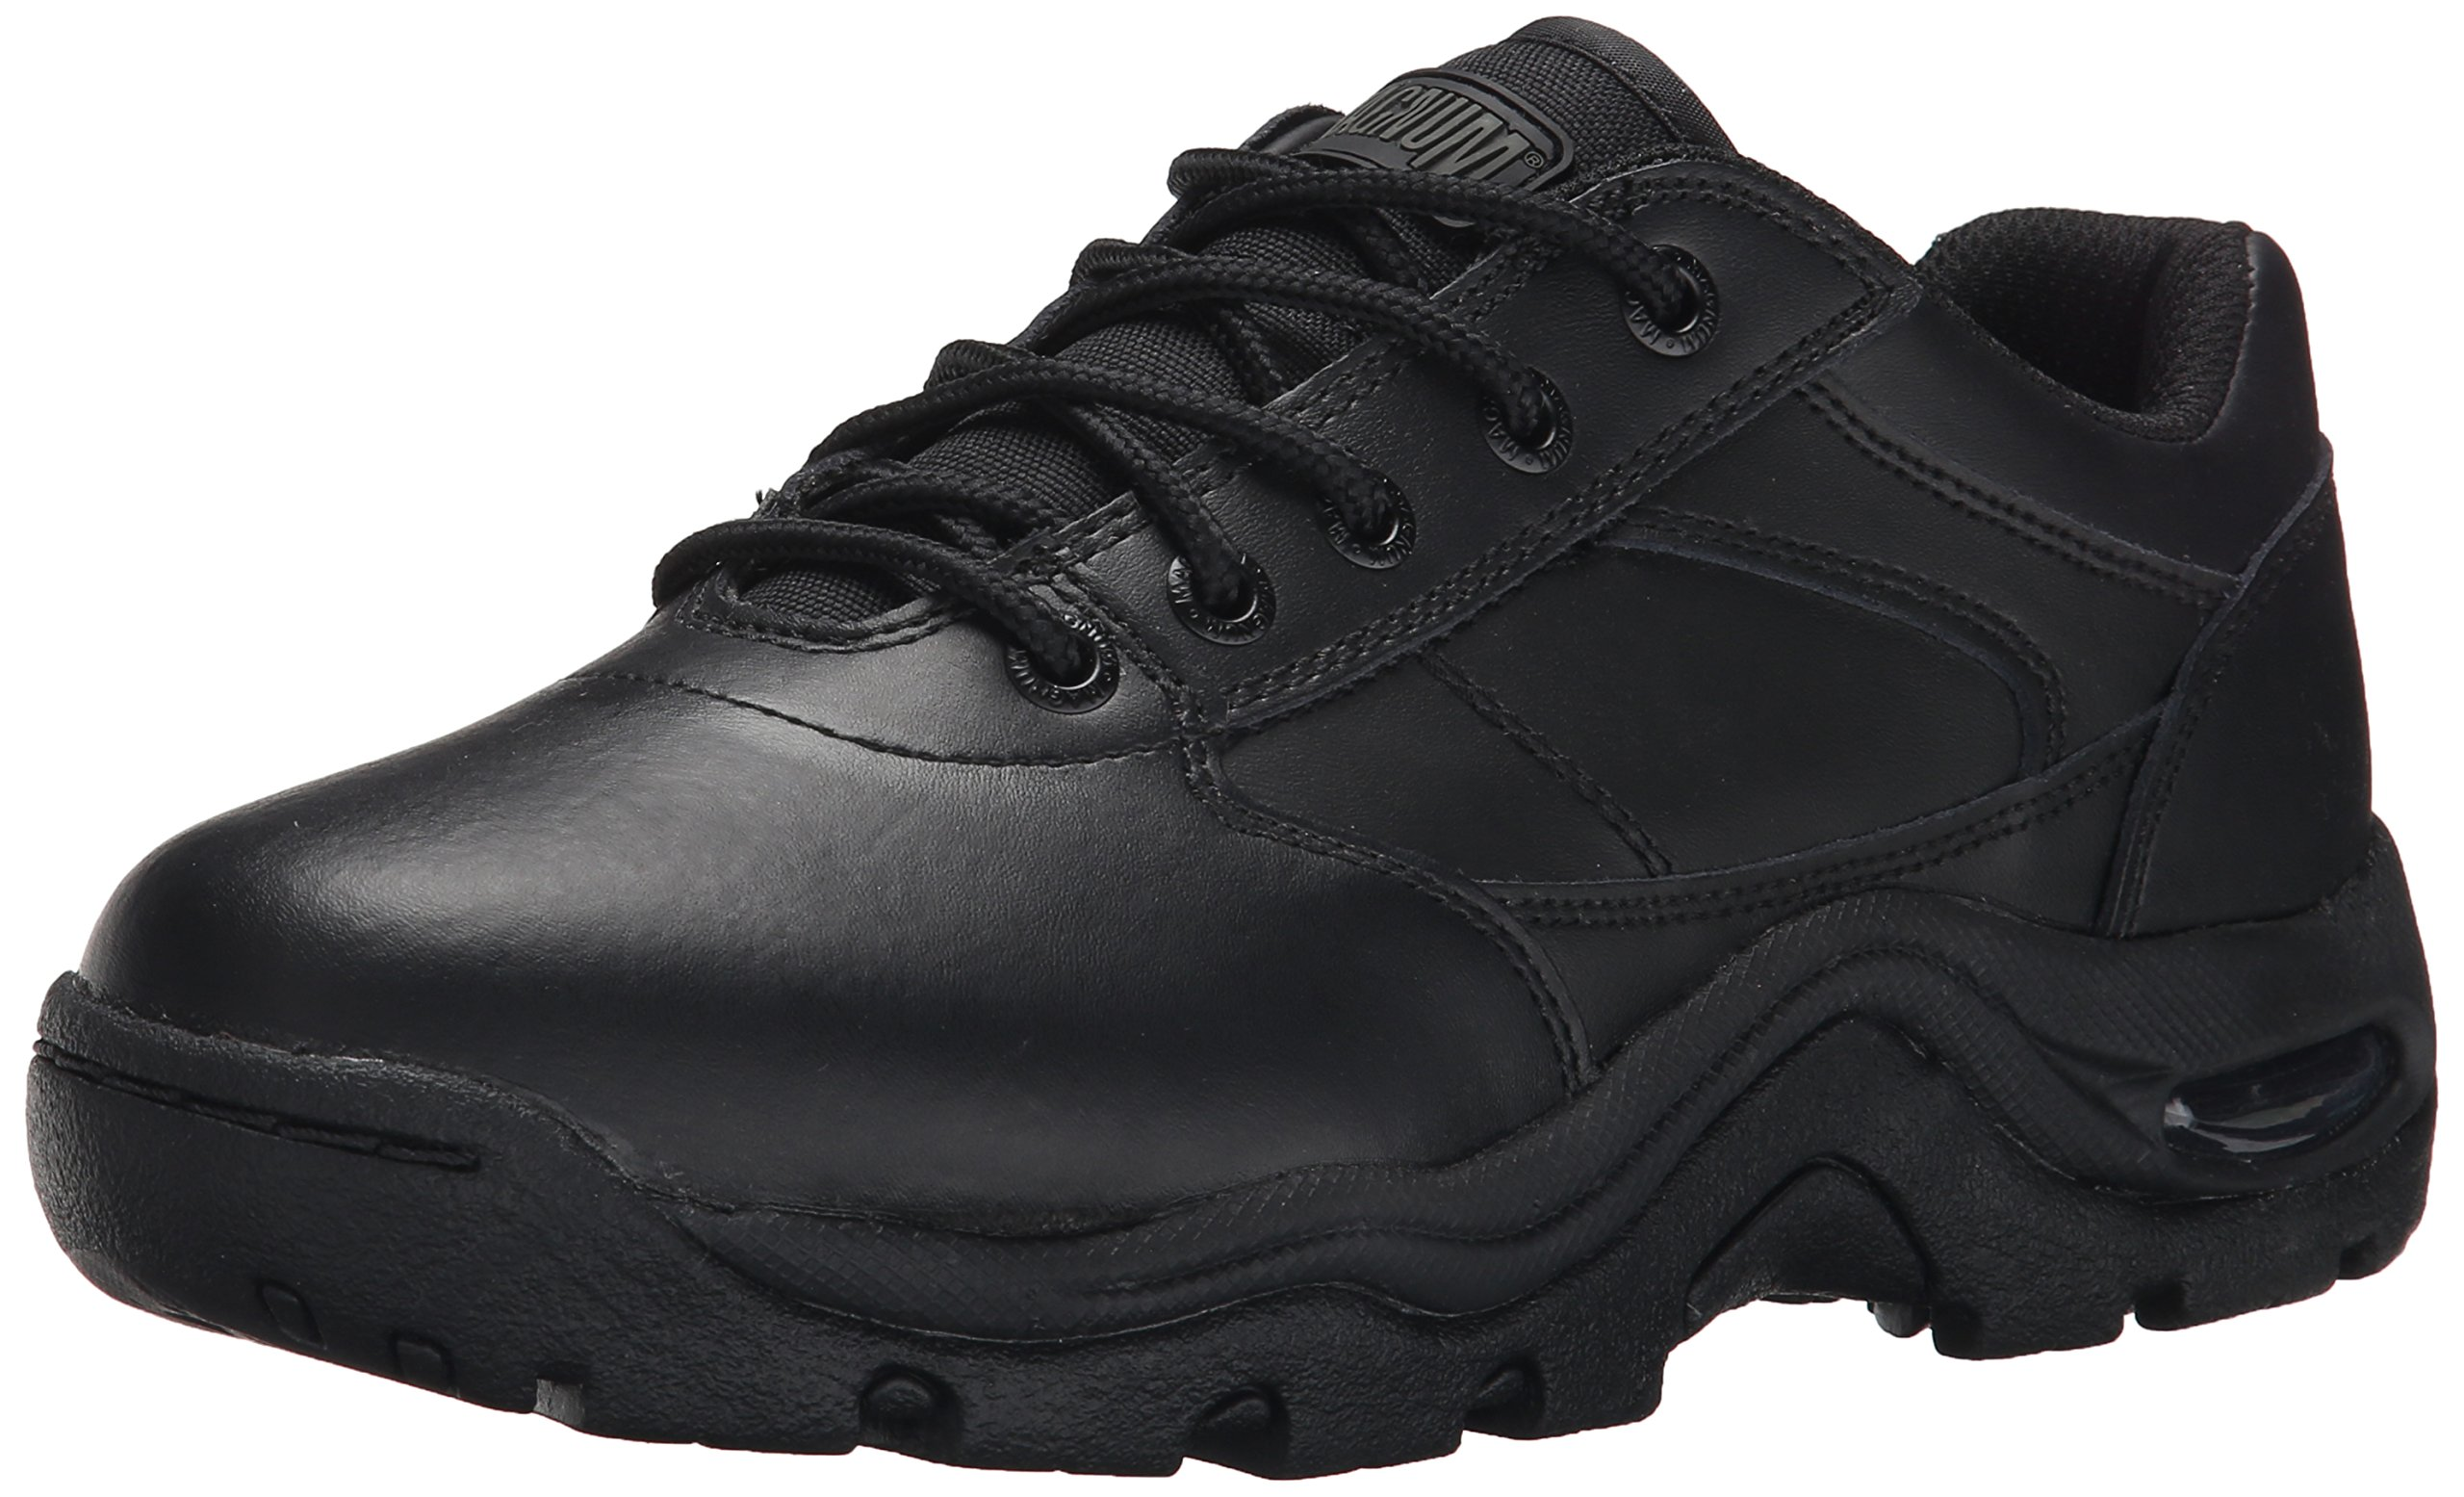 Magnum Men's Viper Low Duty Shoe, Black, 11.5 M by Magnum